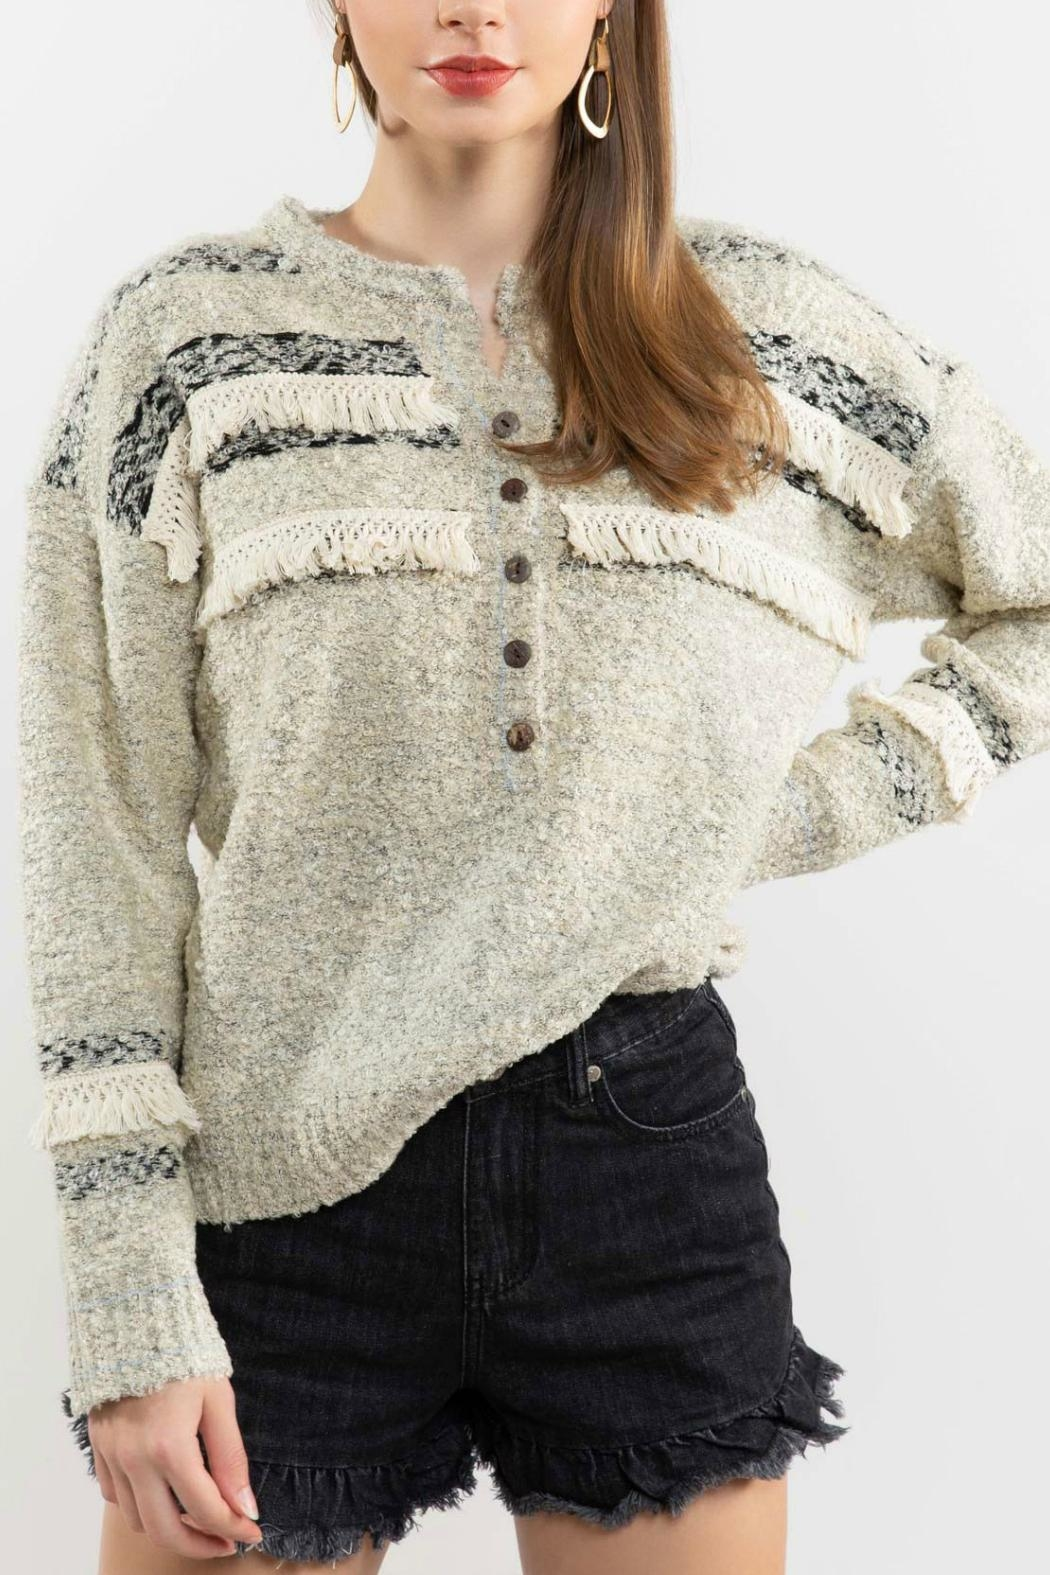 POL Fringe-Trimmed Sweater - Main Image